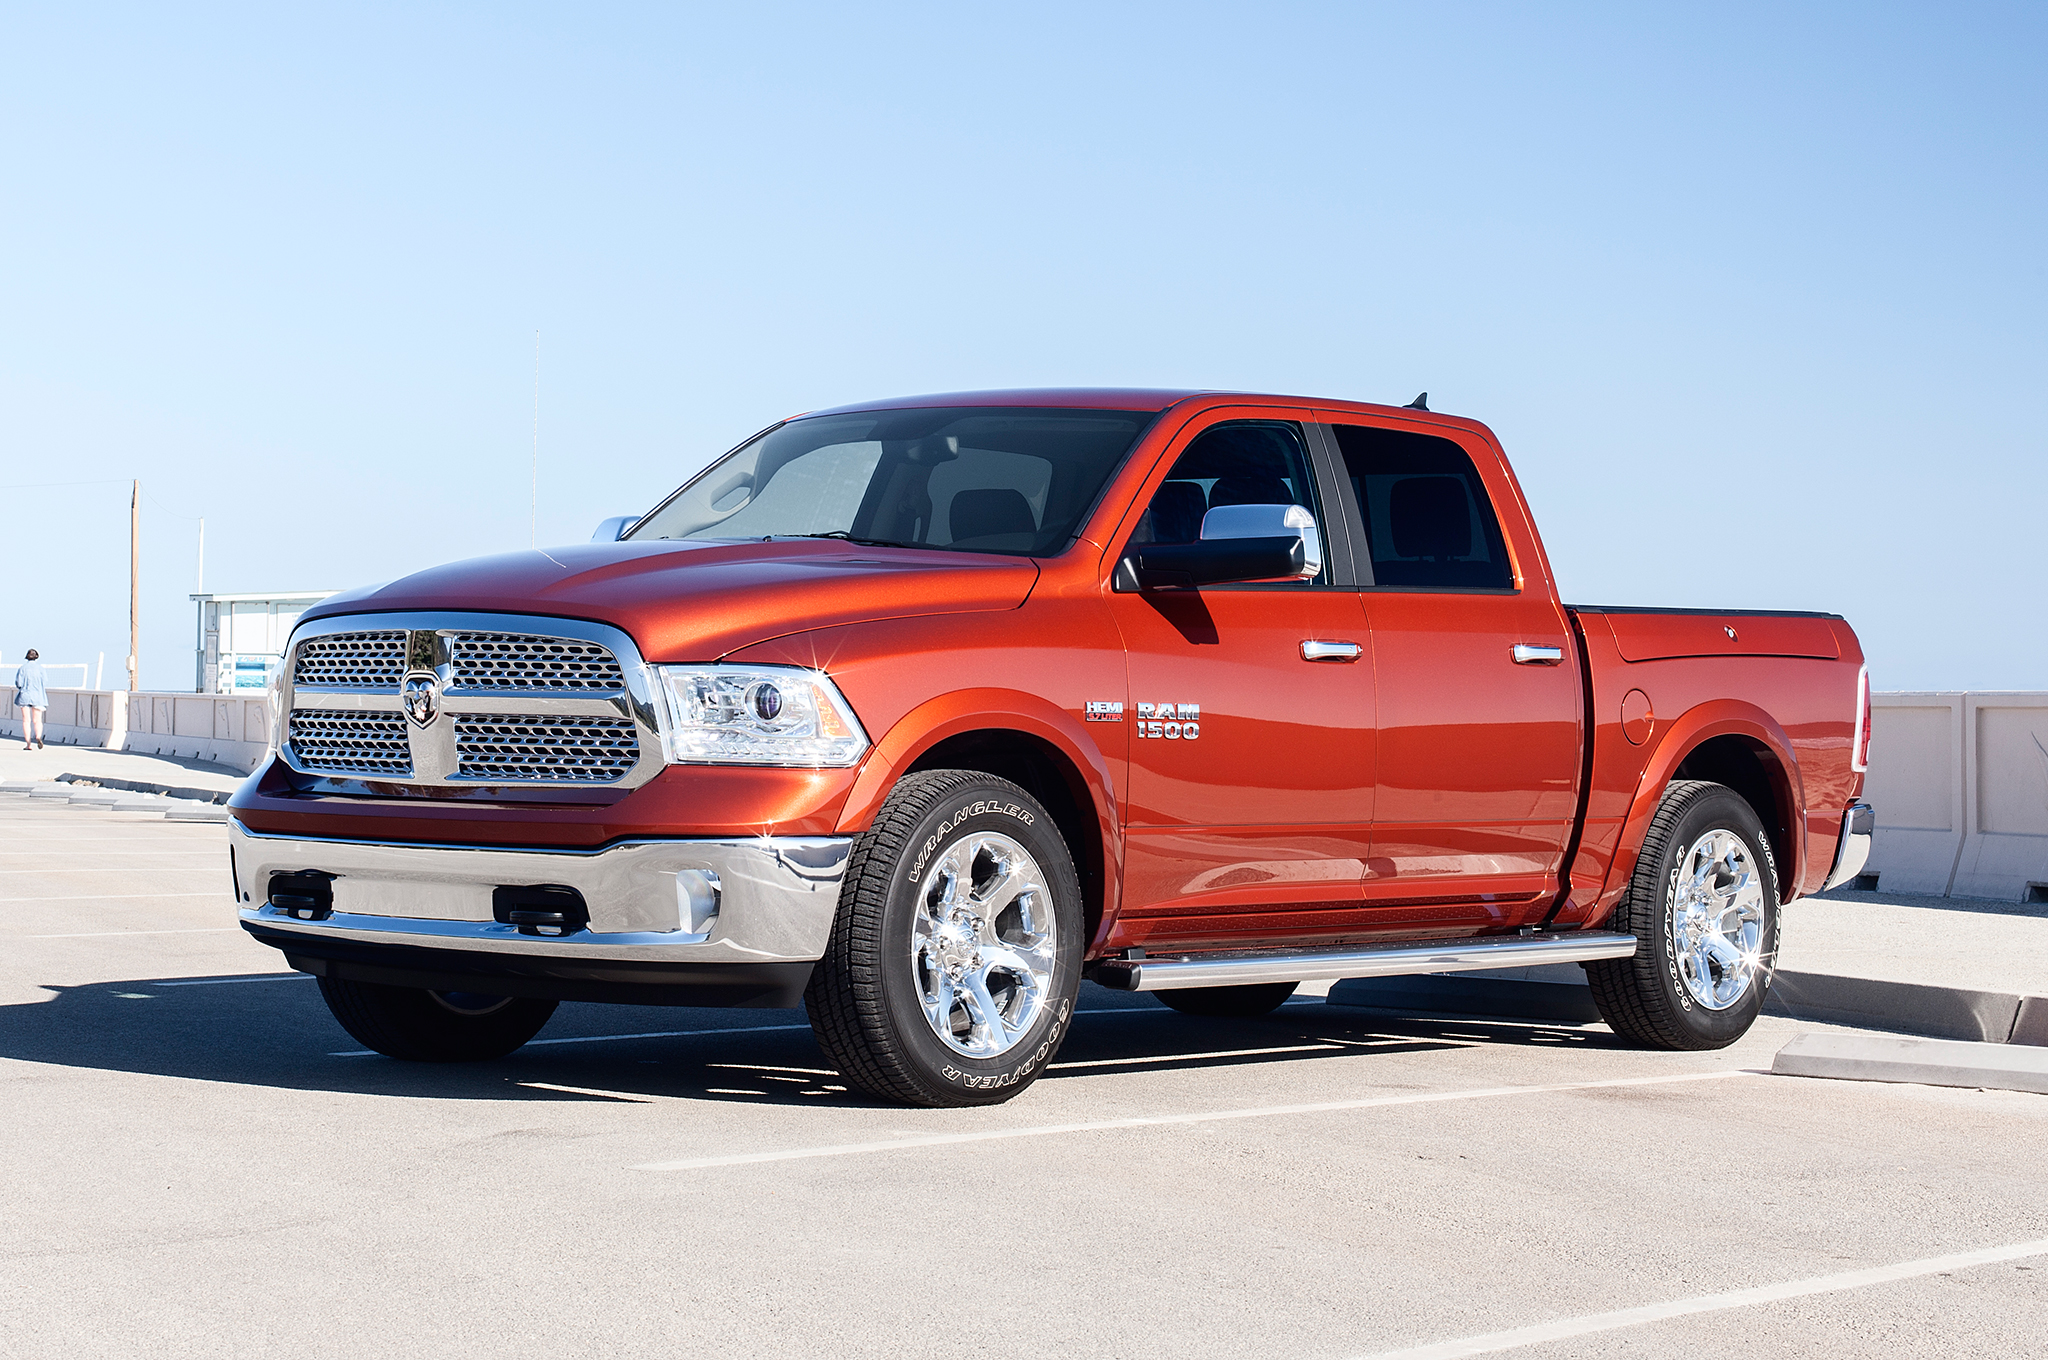 2013 Ram 1500 Laramie Crew Cab 4x4 Long Term Update 2 Motor Trend 2014 Power Seat Wiring Diagram